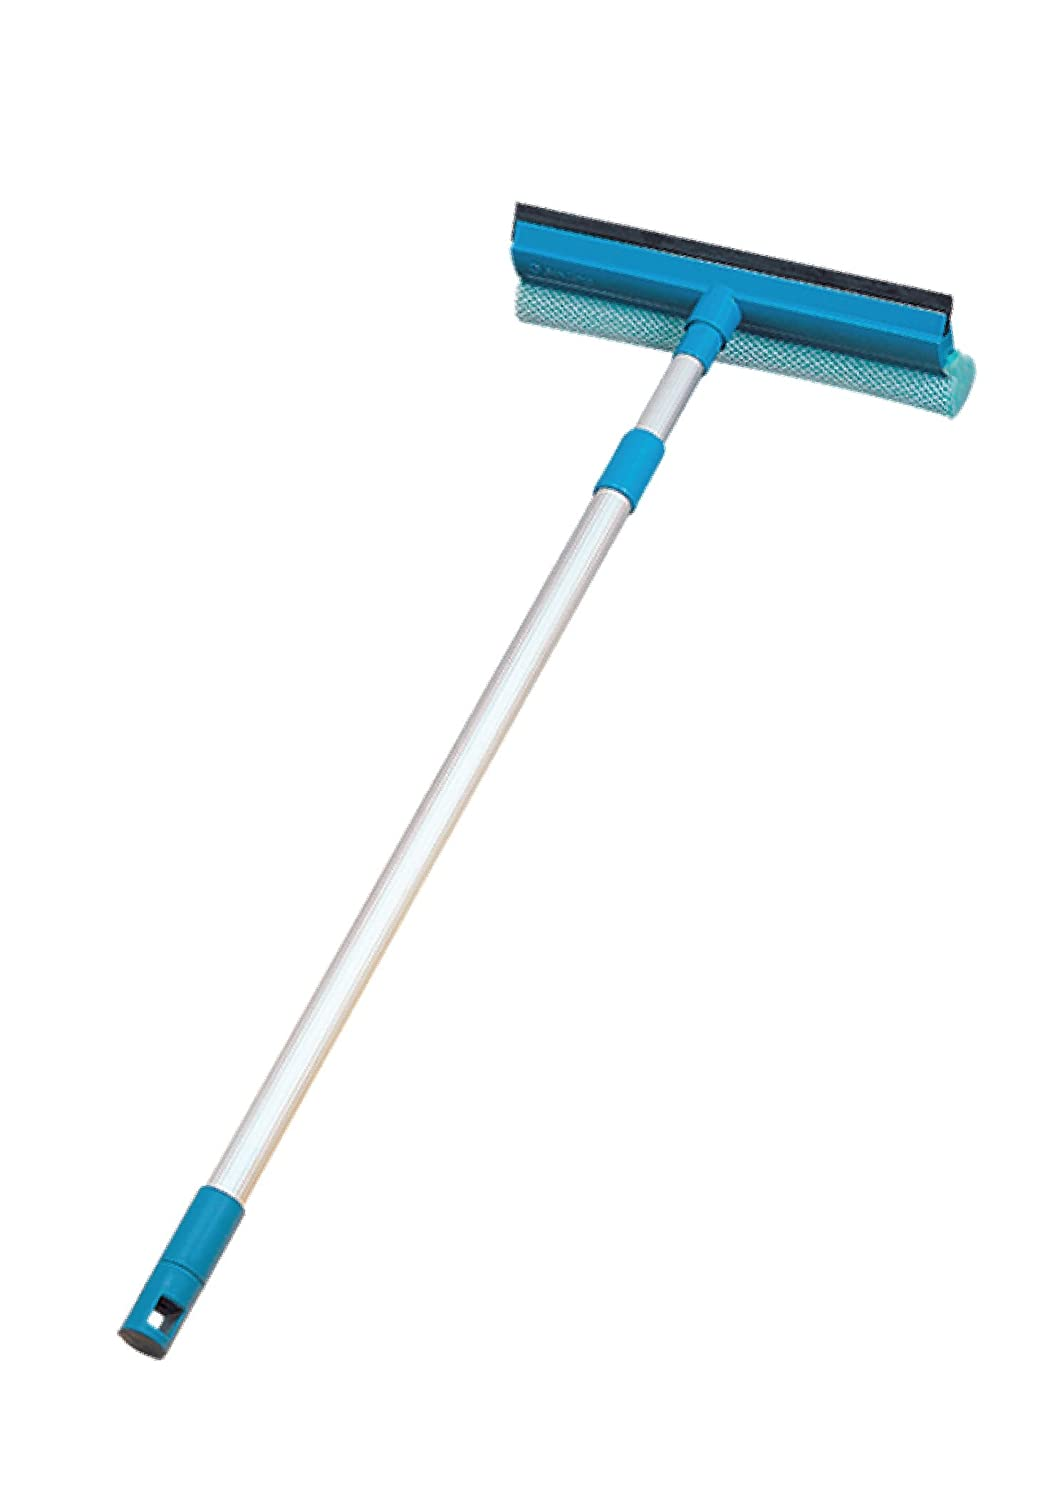 UPIT Squeegee Window Cleaner, Maximum Length 100cm(40inch)(3.2ft) MYMT00001916